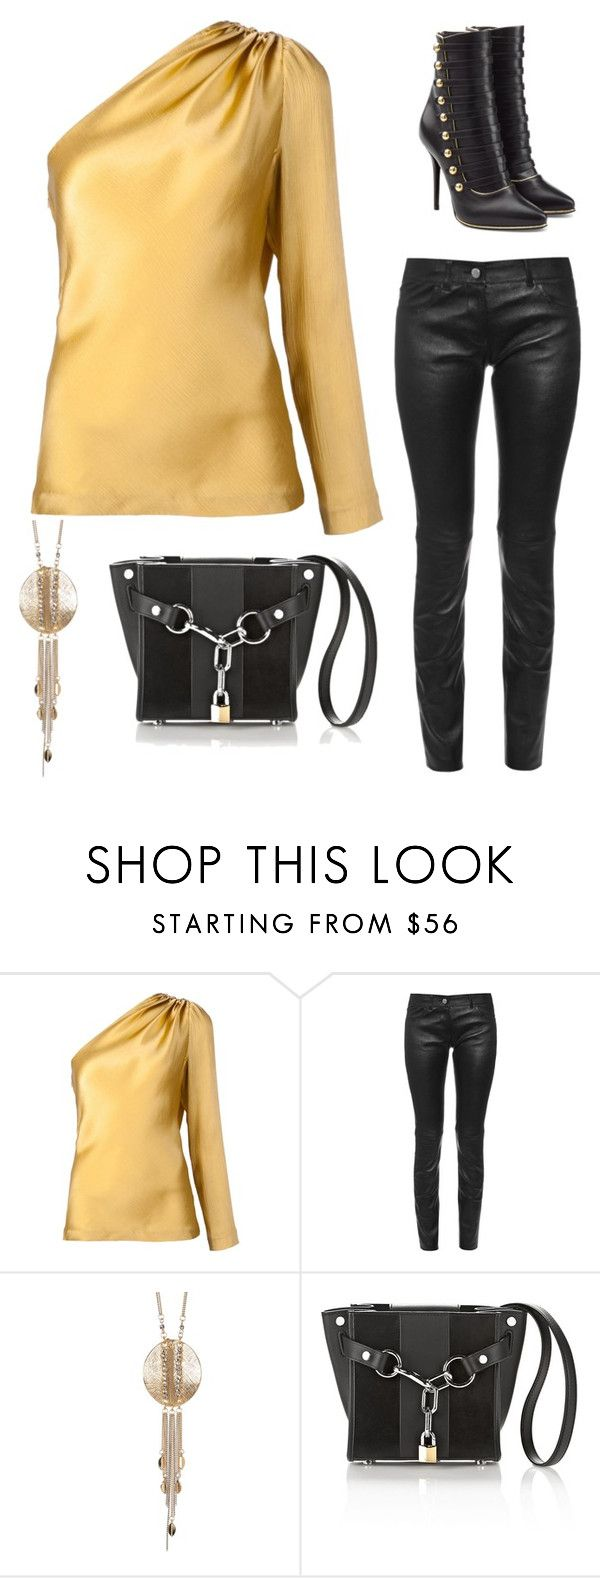 """""""Casual and chic"""" by im-karla-with-a-k ❤ liked on Polyvore featuring Cushnie Et Ochs, Balenciaga, Danielle Nicole, Alexander Wang and Balmain"""